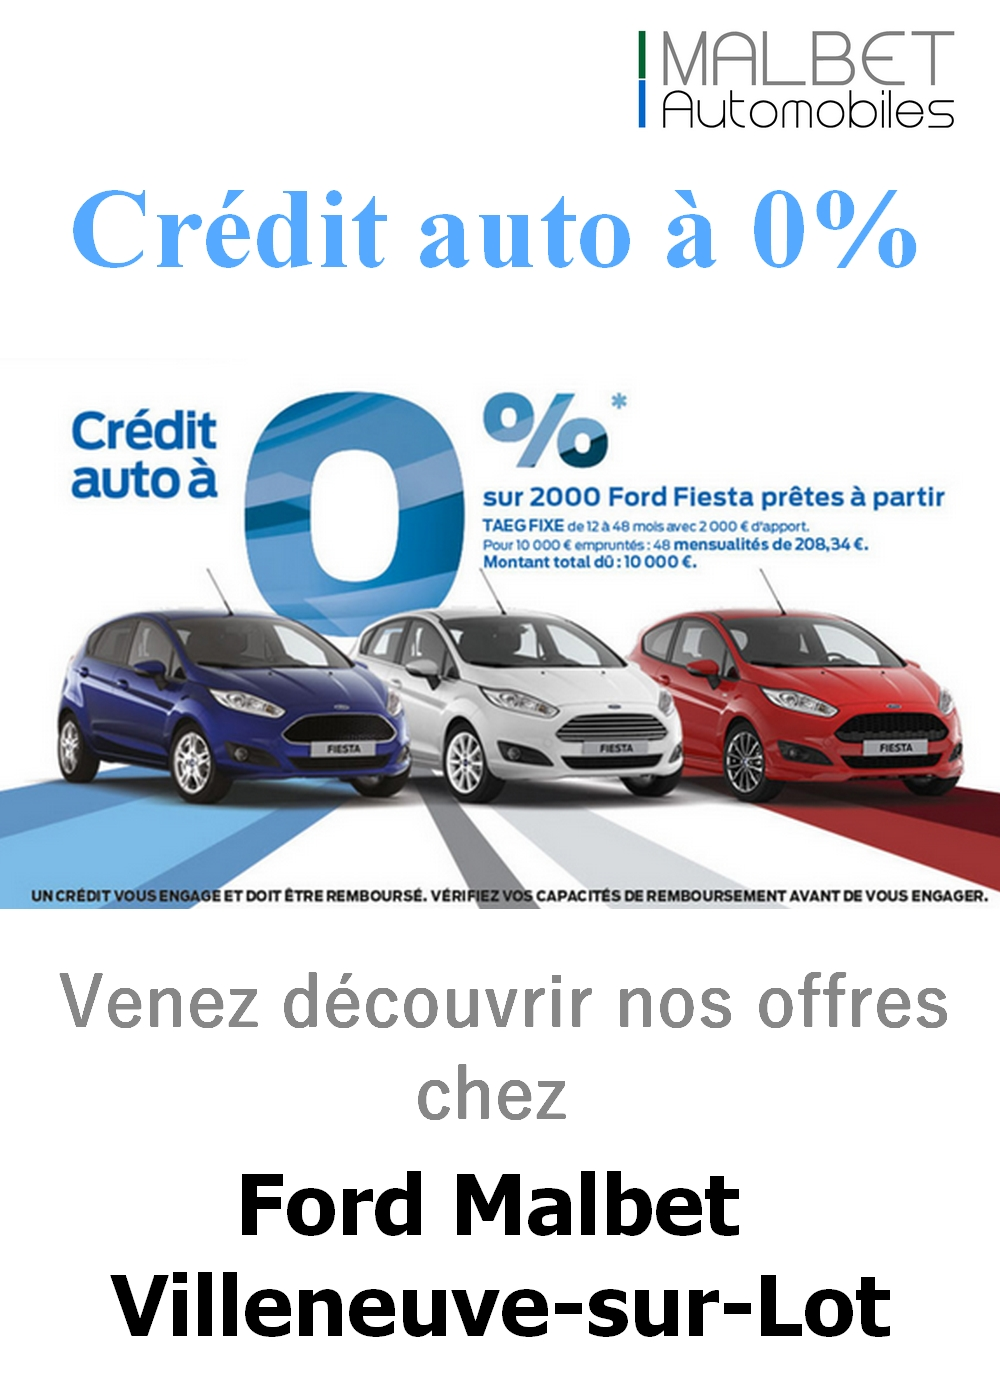 credit auto taux 0 chez ford